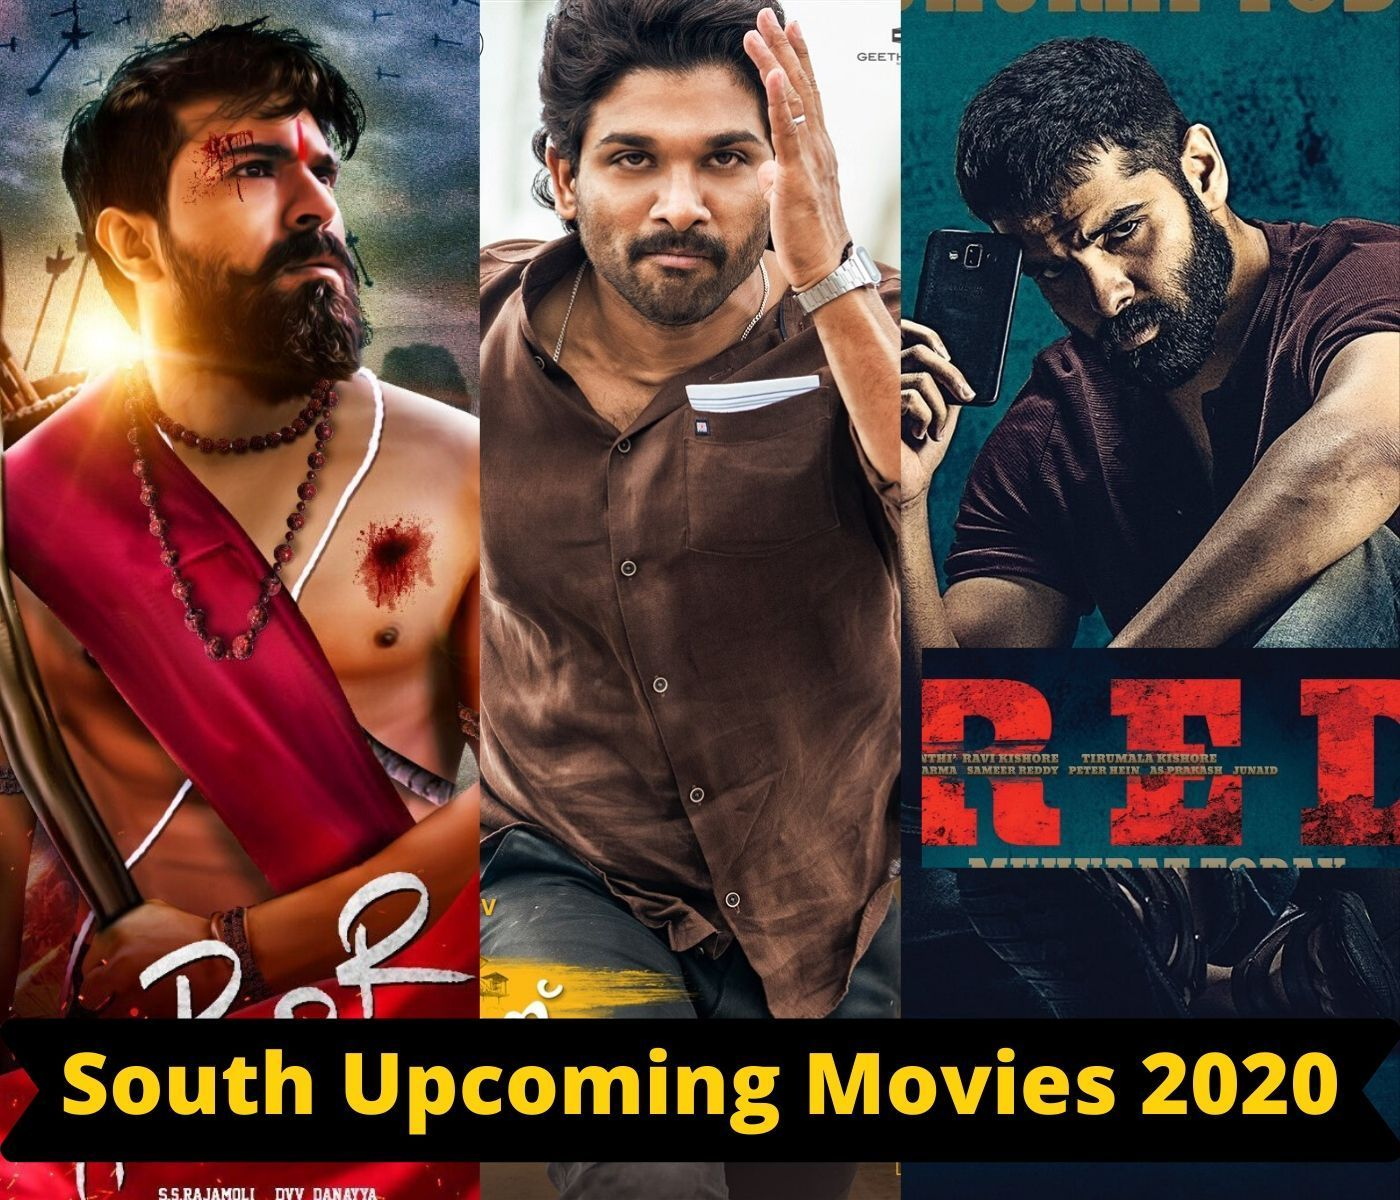 Tollywood Complete Upcoming Movies List 2020 With Cast And Release Date Shovon Howlader In 2020 Upcoming Movies Movie List Upcoming Movies 2020